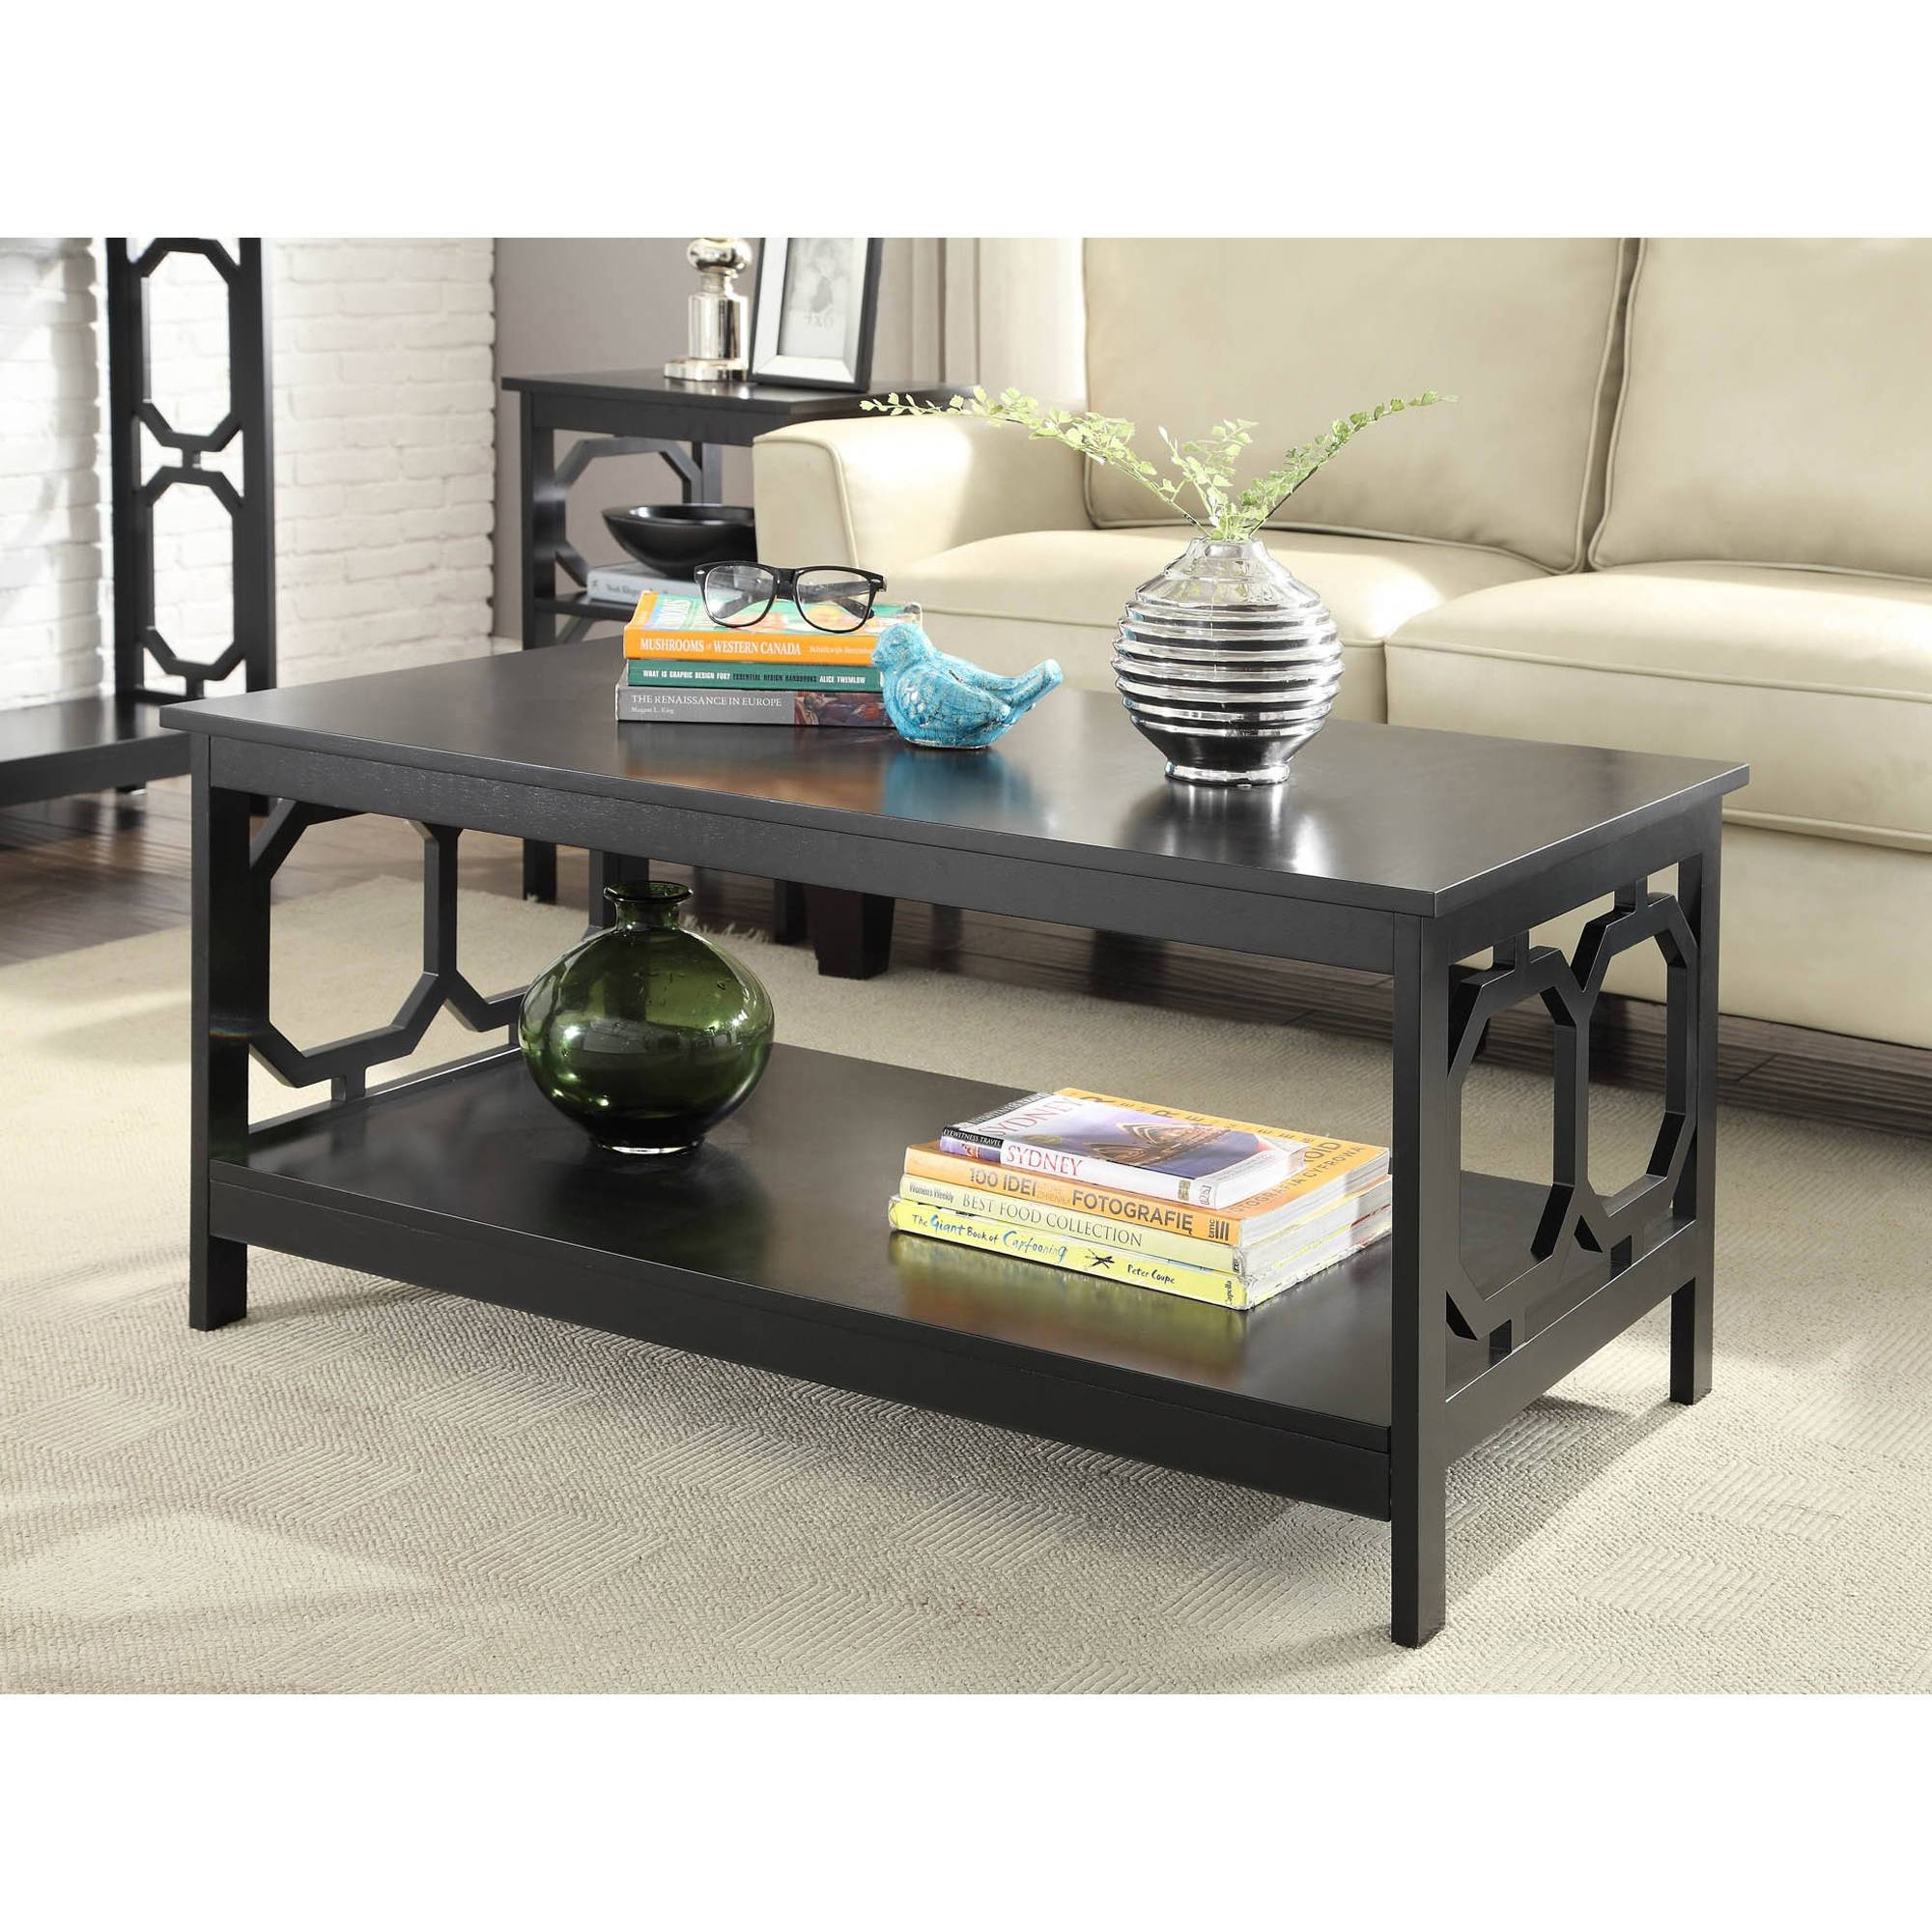 Coffee Tables - Walmart inside Coffee Tables With Baskets Underneath (Image 14 of 30)